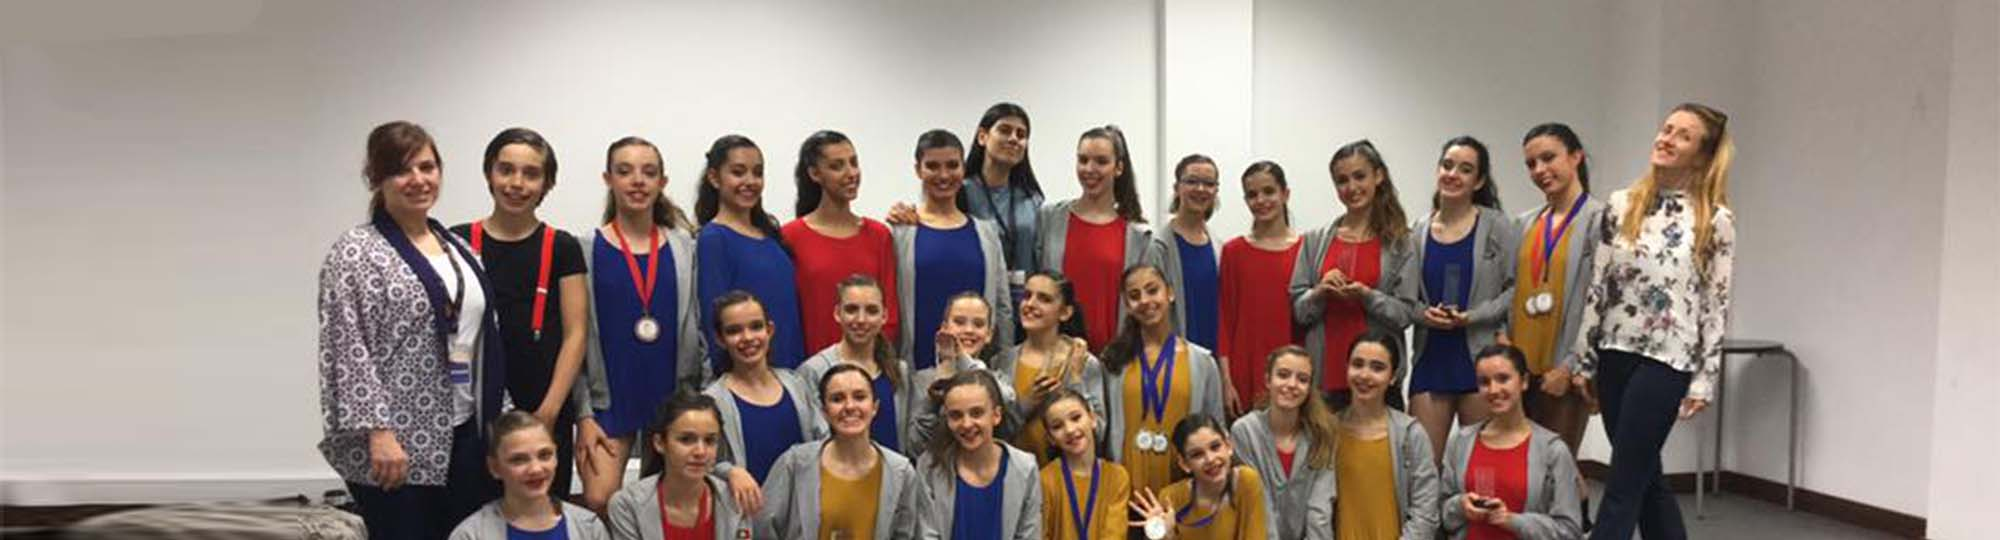 Leiria Dance Competition 2017